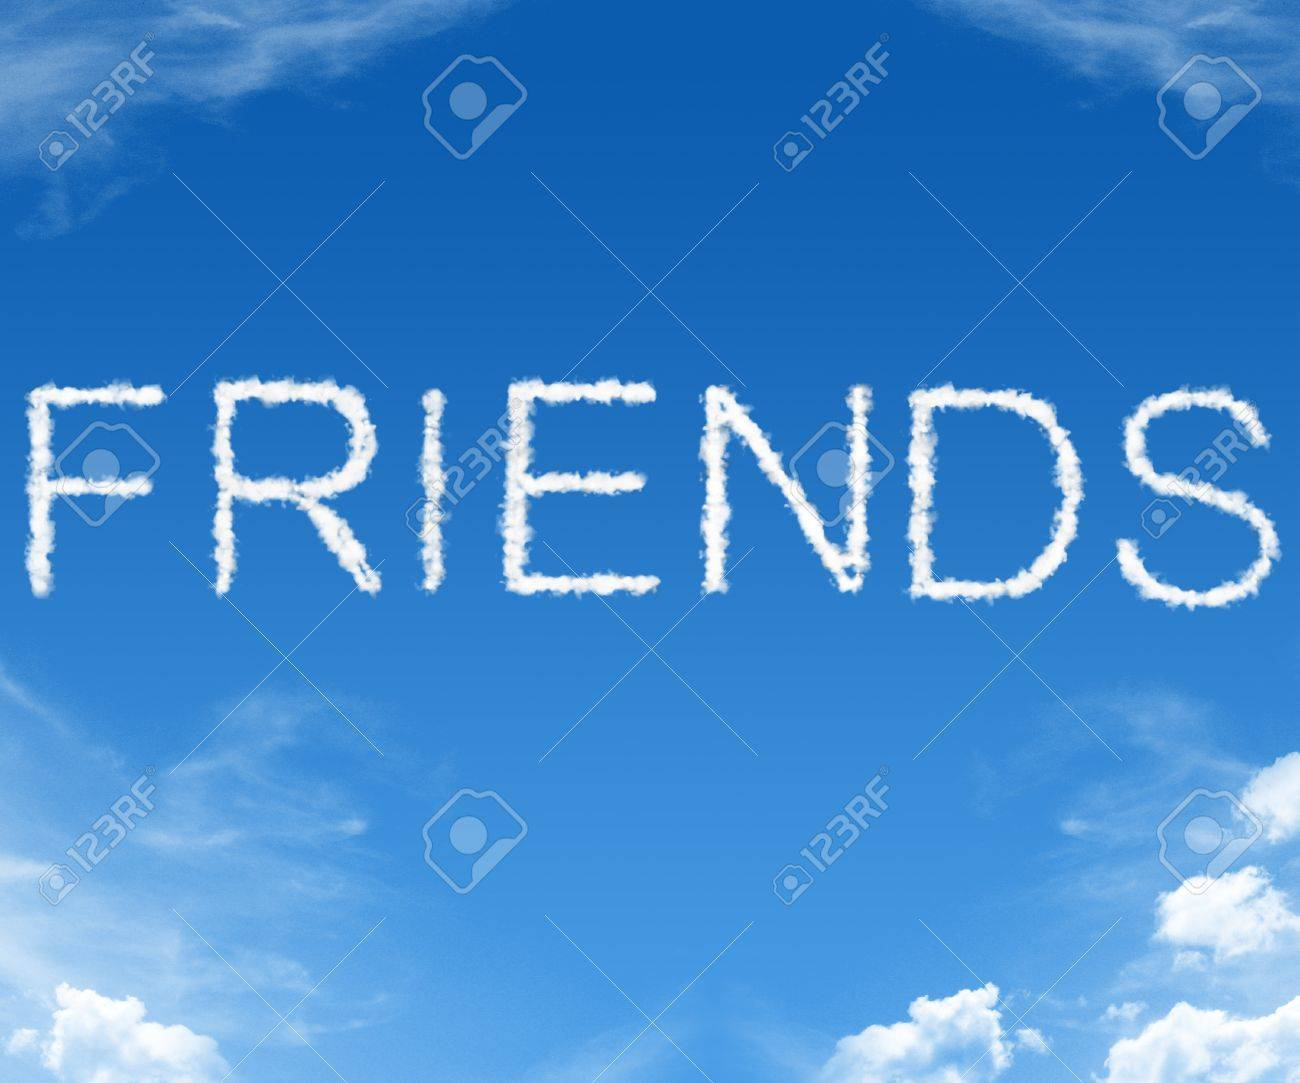 Clouds Forming The Word Friends In The Sky Stock Photo, Picture ...